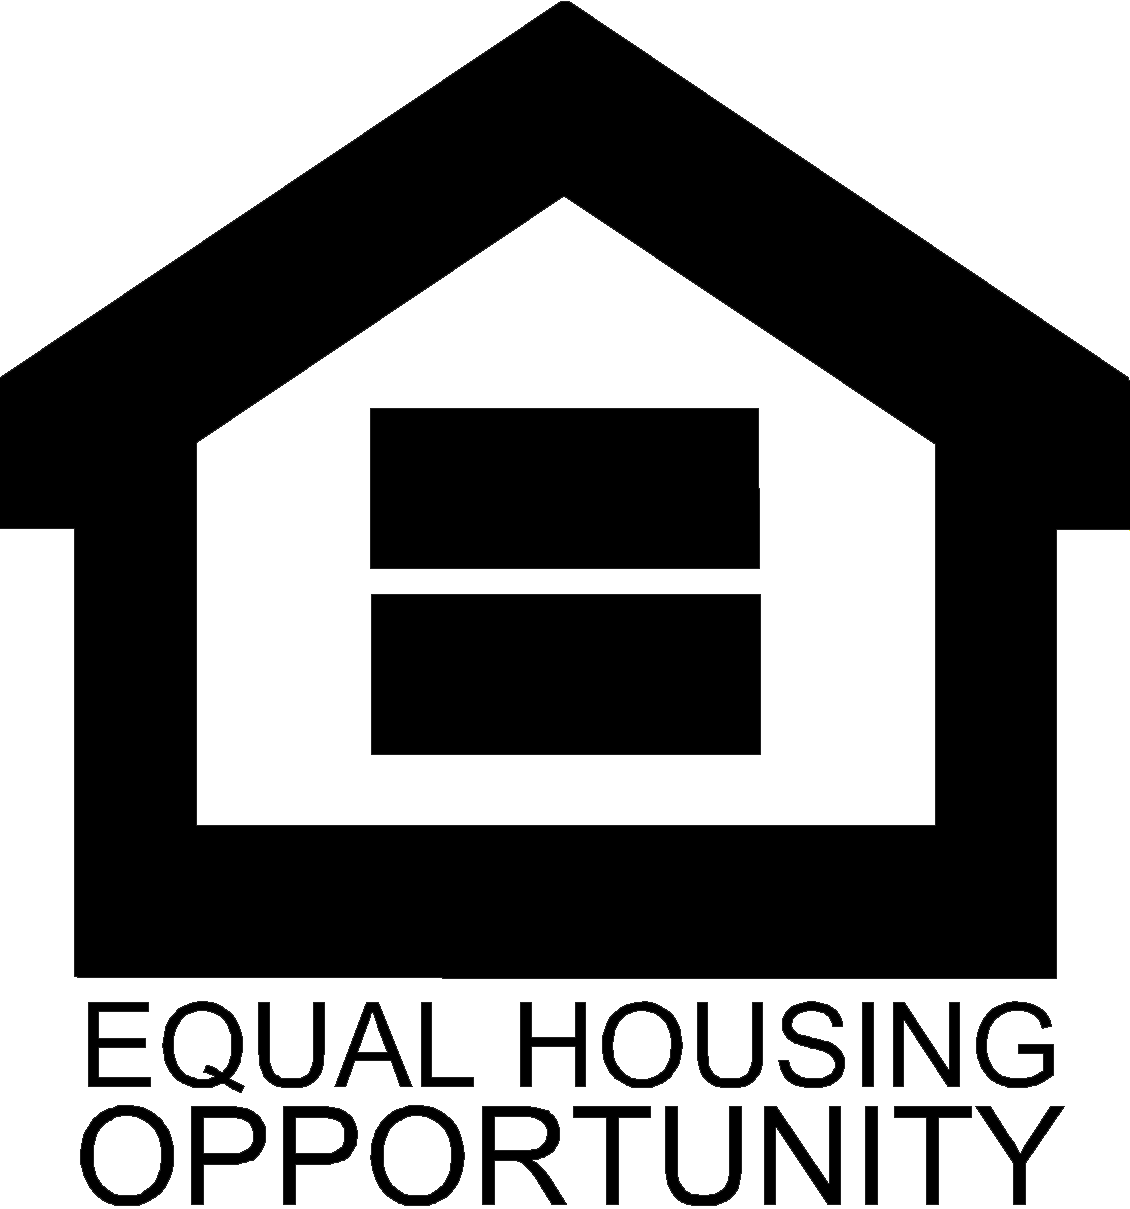 equal-housing-opportunity-logo-1200w.png